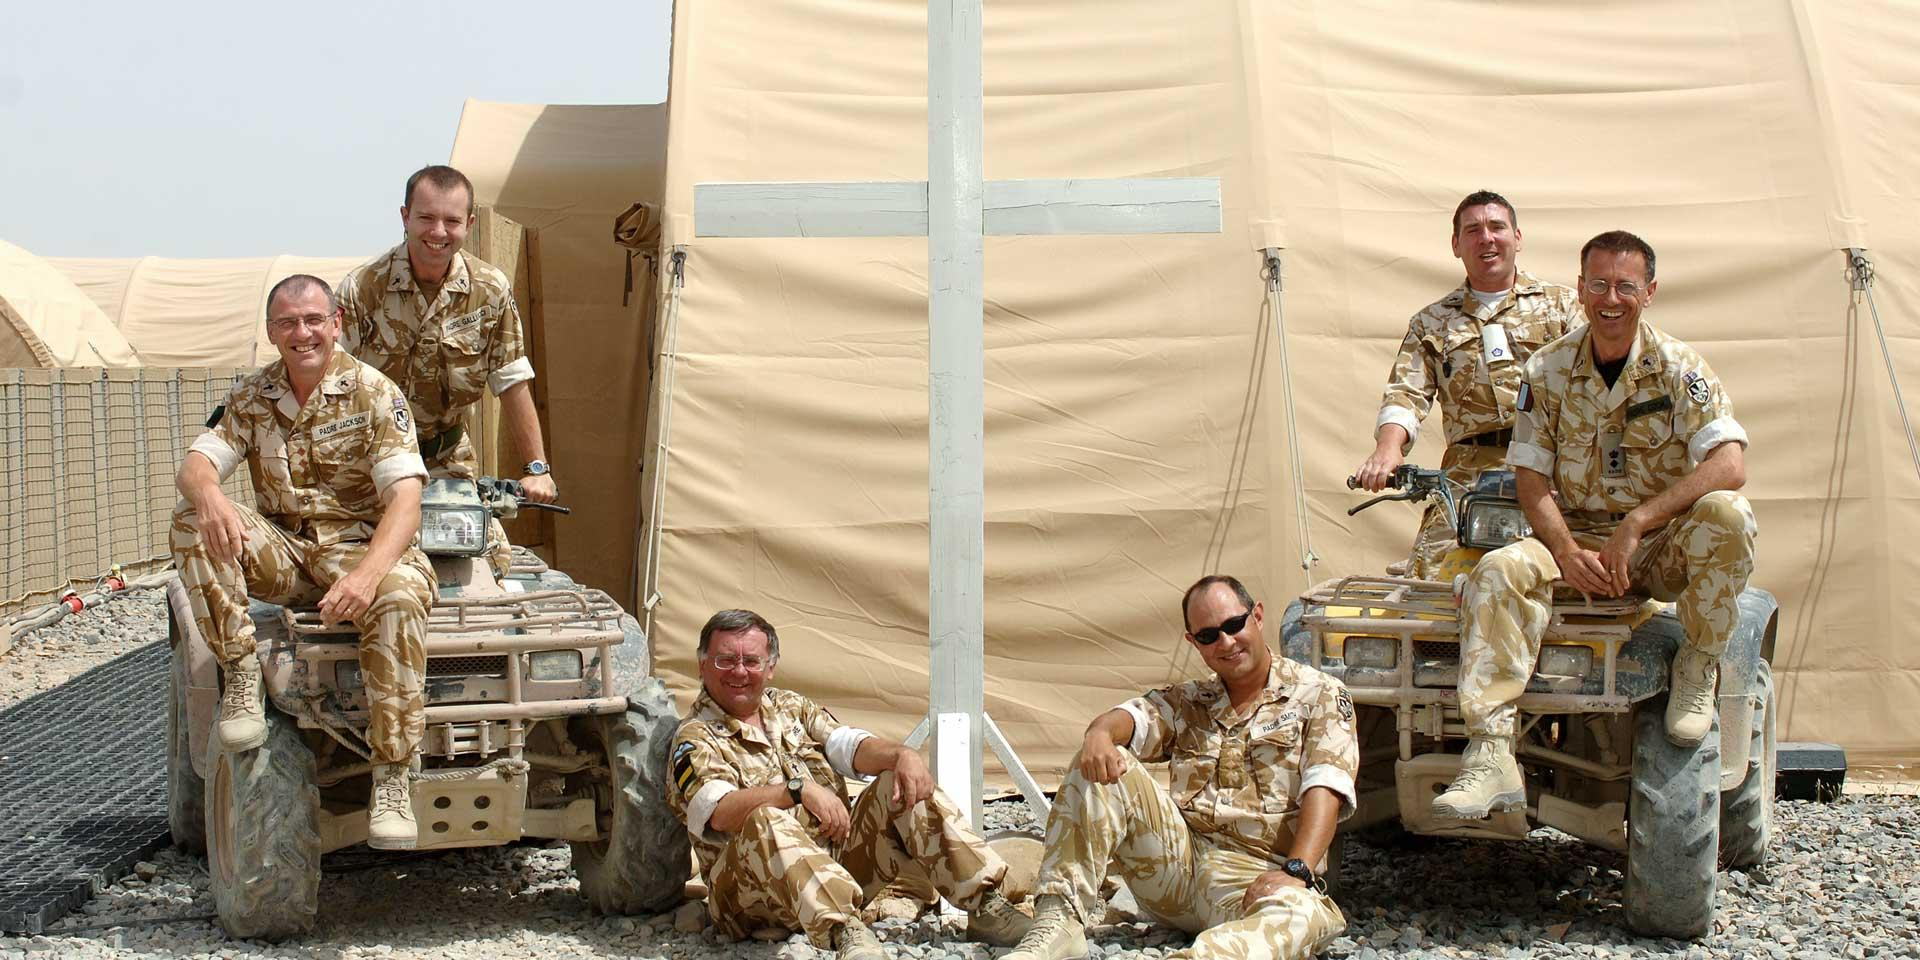 British Army chaplains at Camp Bastion, Helmand, Afghanistan, 2008